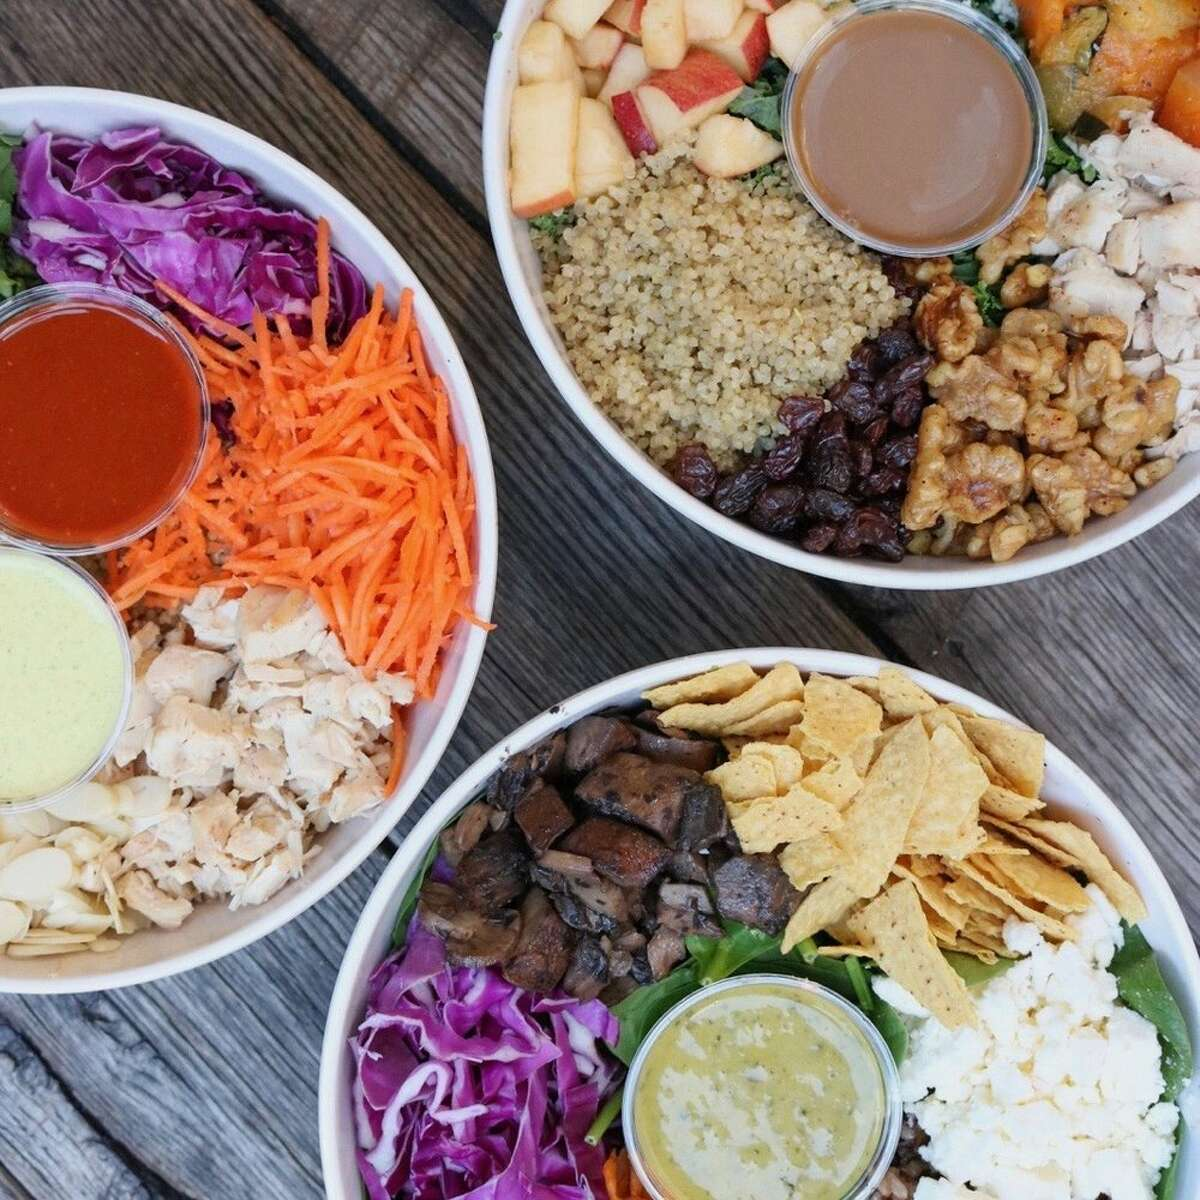 Sweetgreen, a national fast-casual salad bowl restaurant, has chosen Houston as its first expansion in Texas with new stores opening in Rice Village and Montrose.